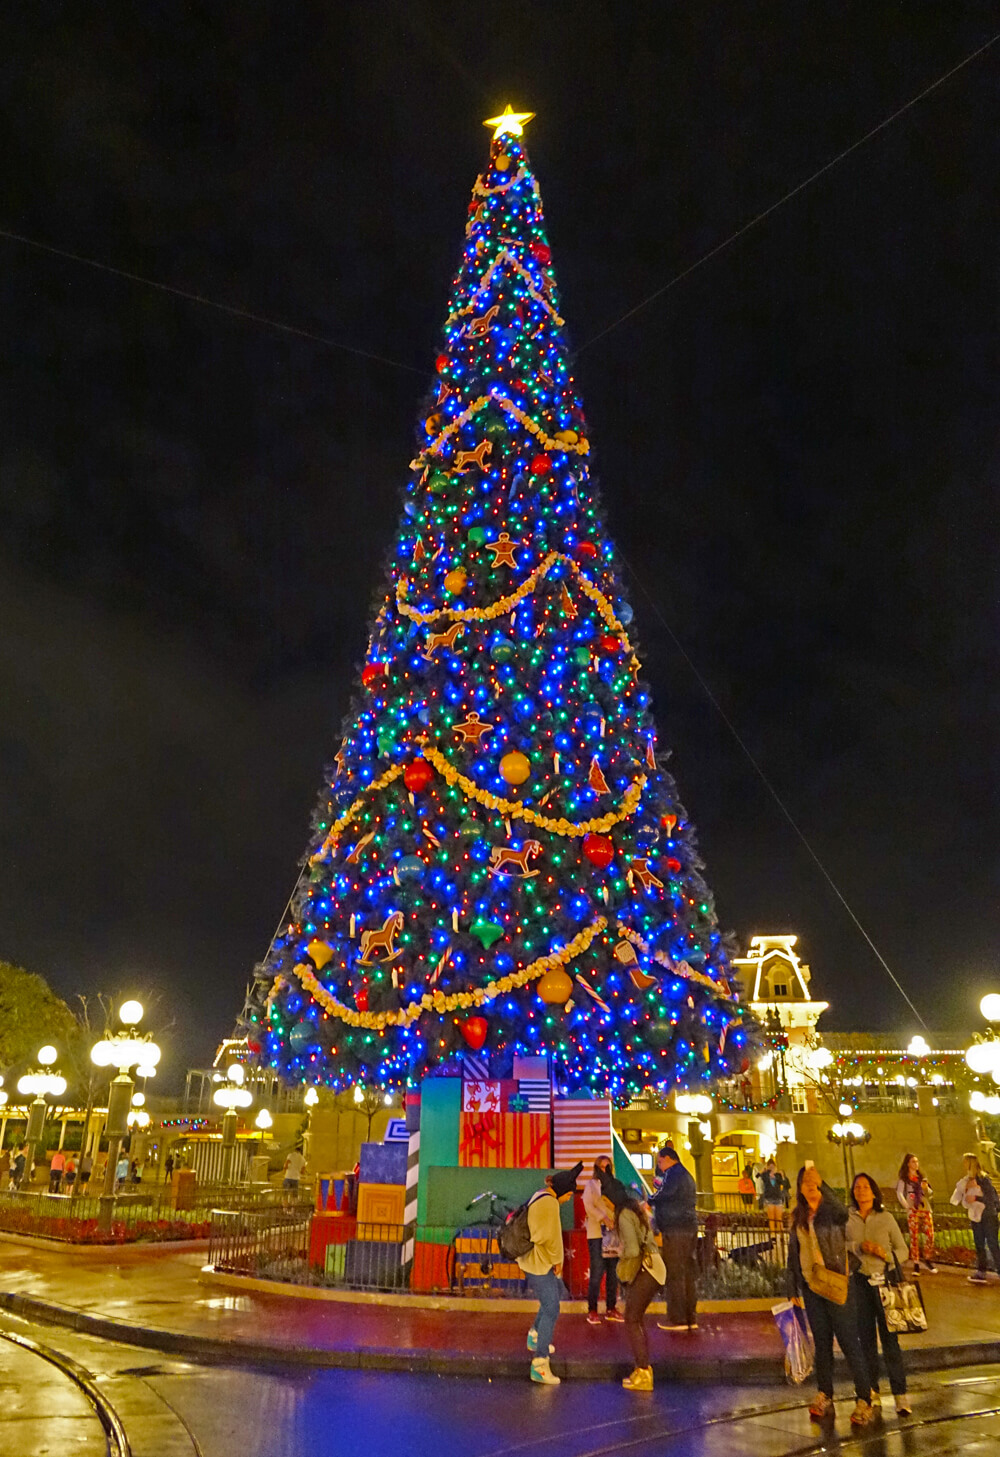 disney world holiday events 2018 magic kingdom tree - Christmas Holiday Decorations